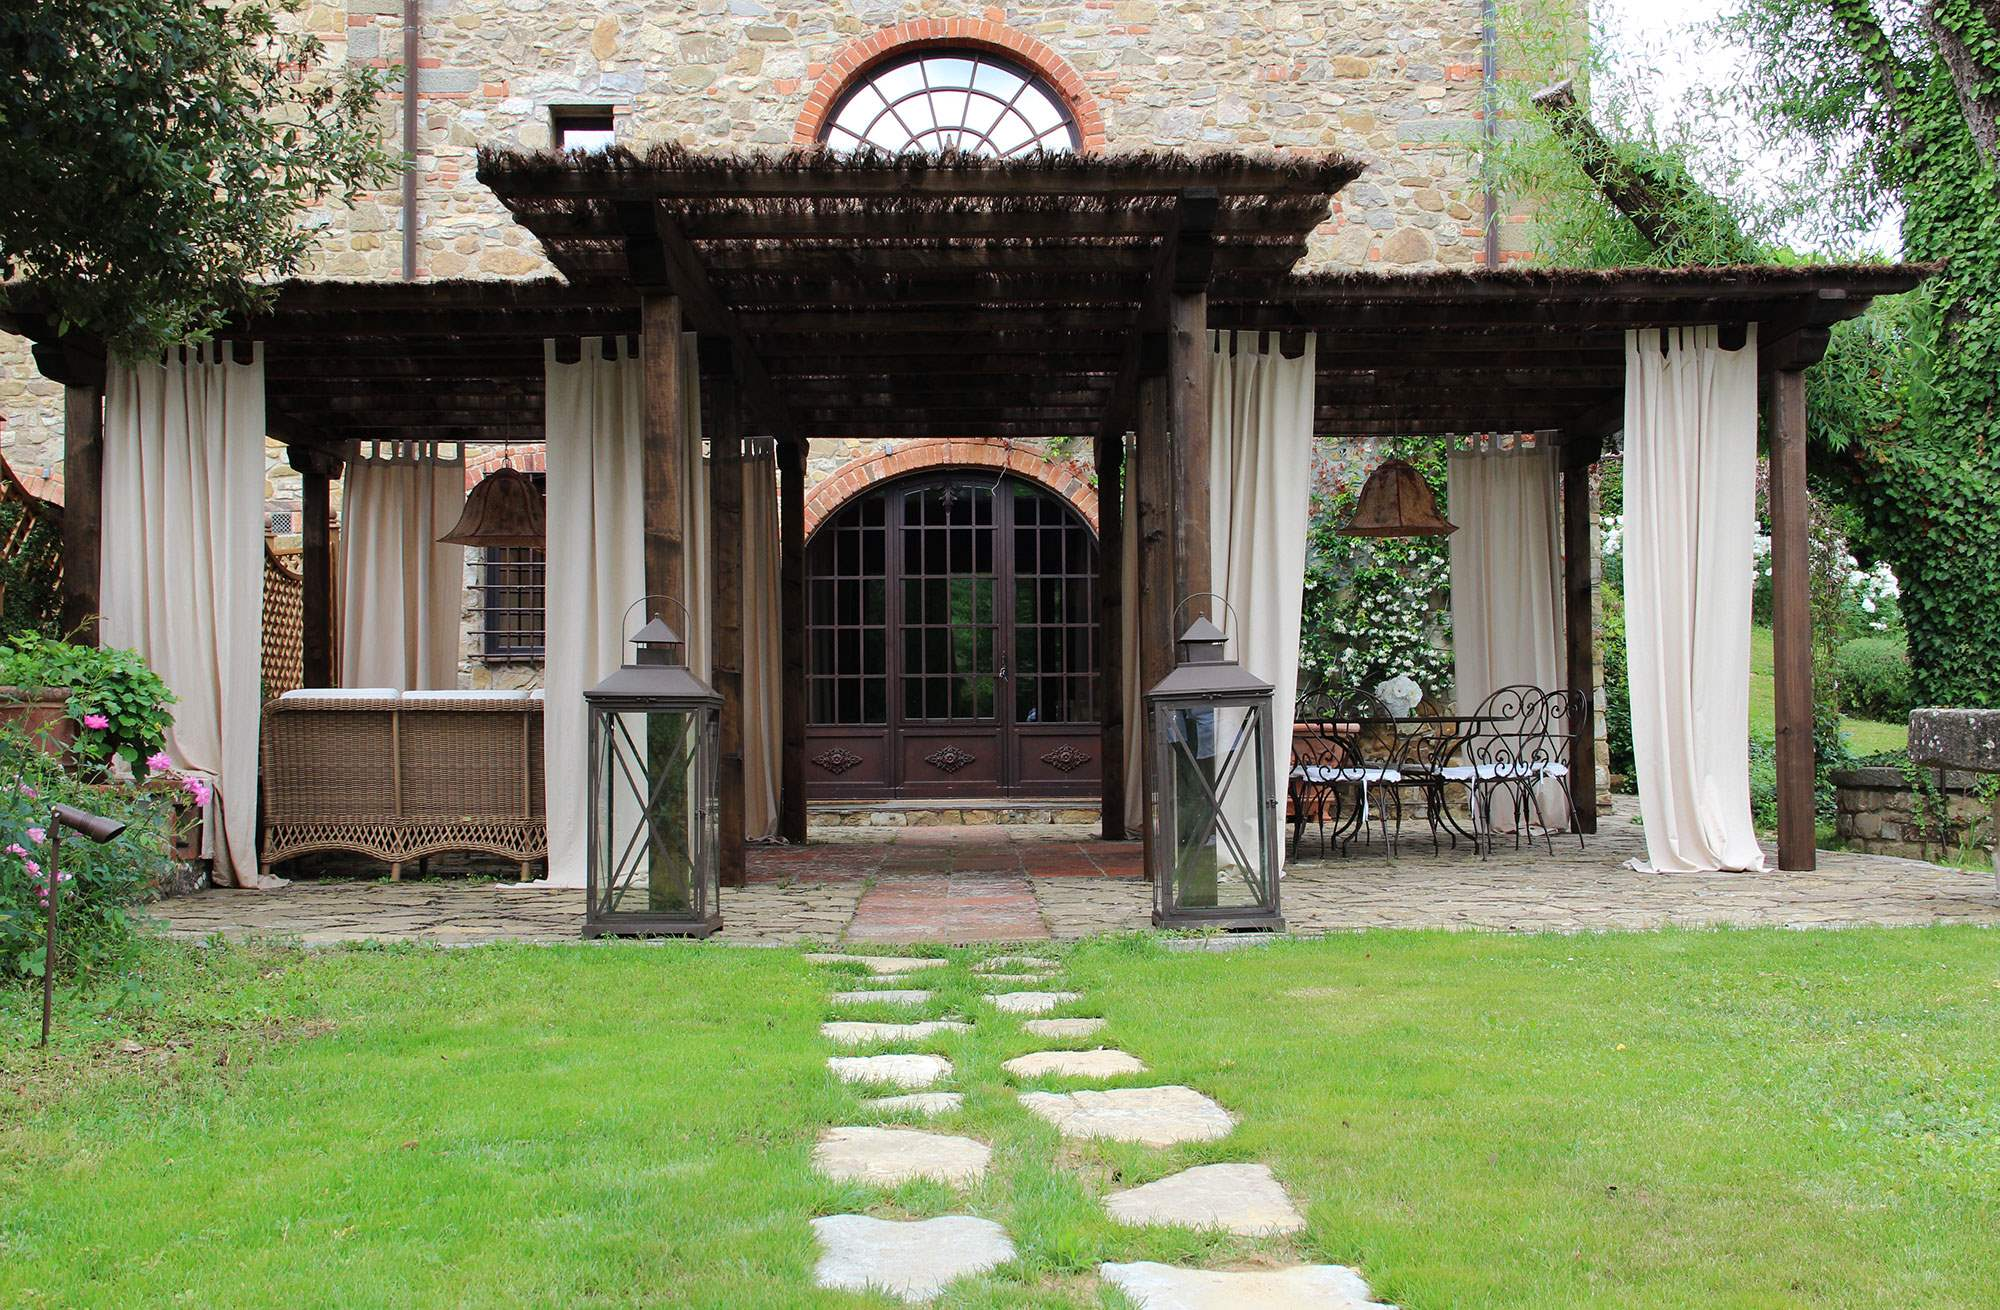 Villa Tuscan, 6 (+2), 3 bedroom villa in Chianti & Countryside, Tuscany Photo #14